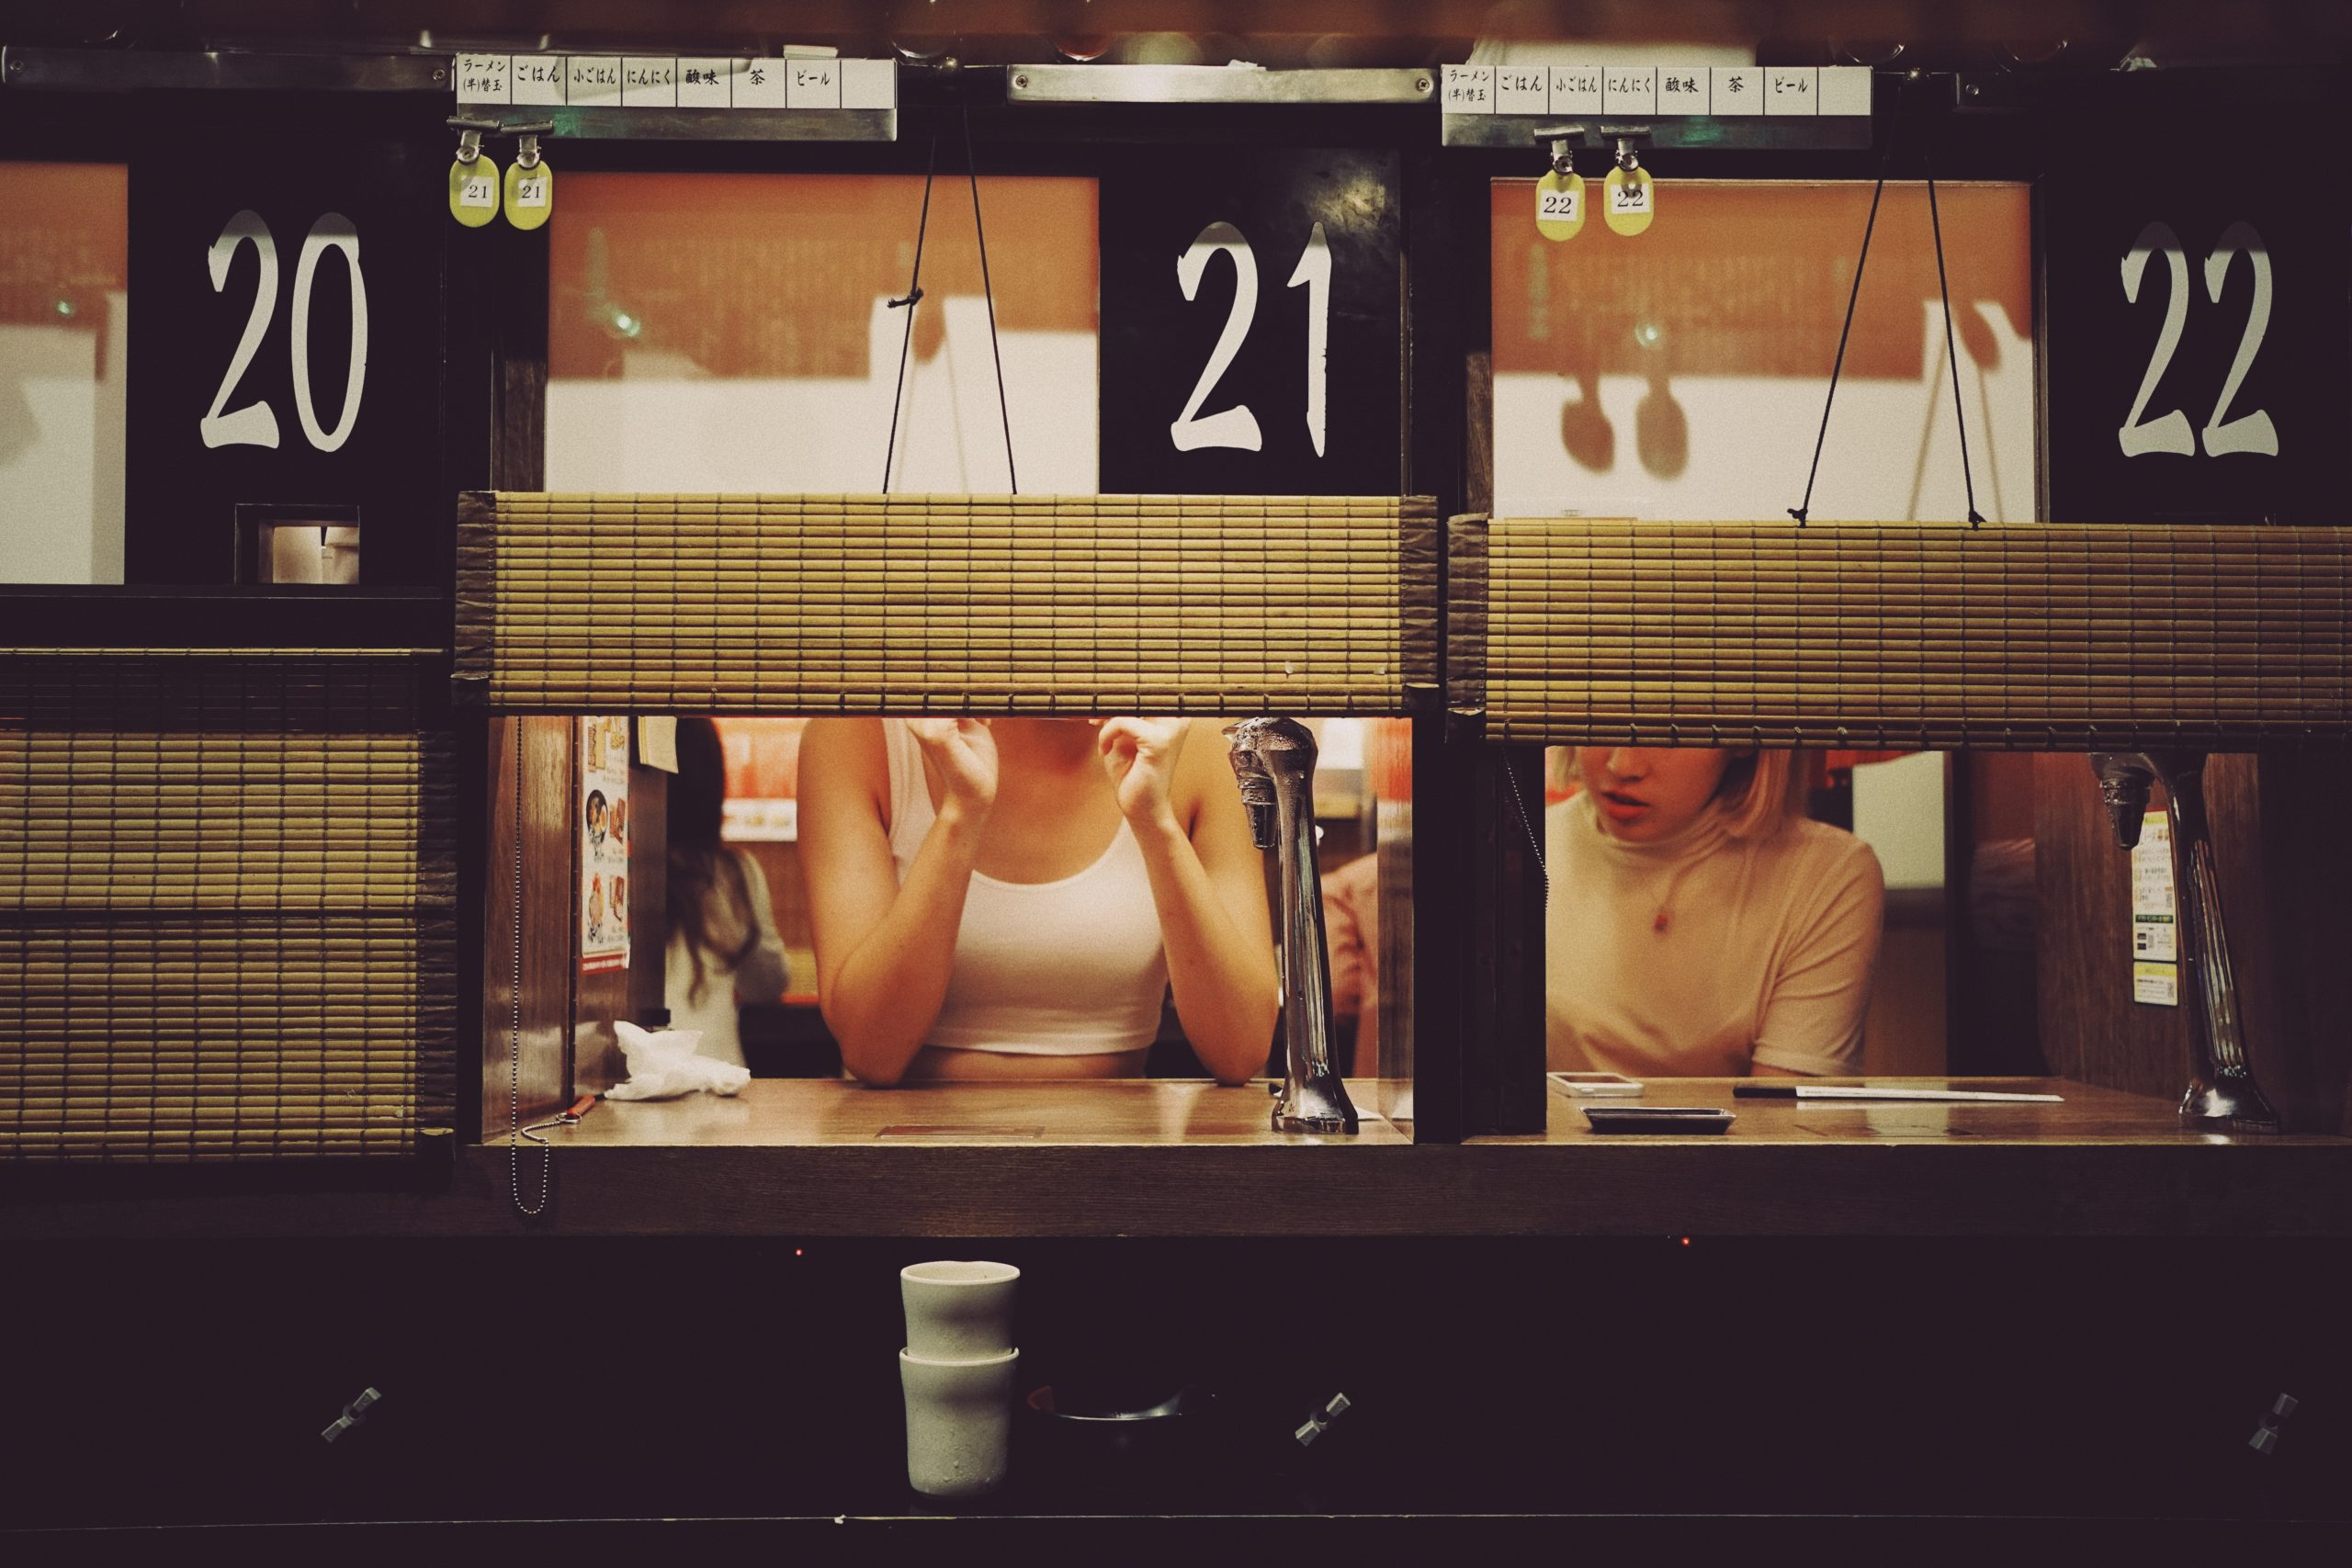 Japan Food Trends - Restaurant Booths